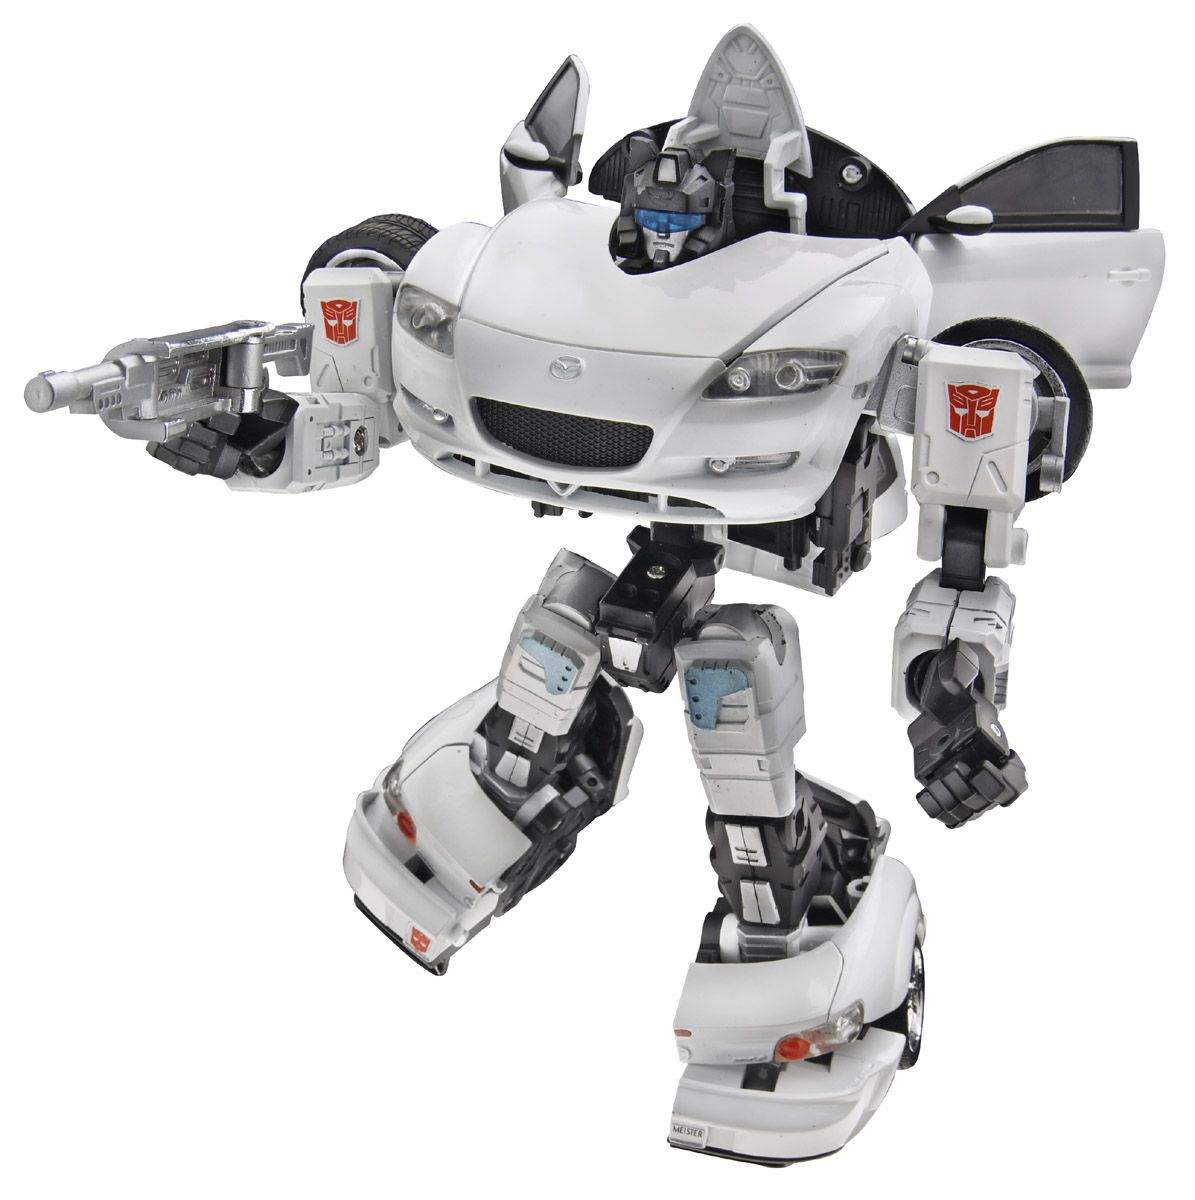 Meister Mazda Rx 8 Transformers Toys Tfw2005